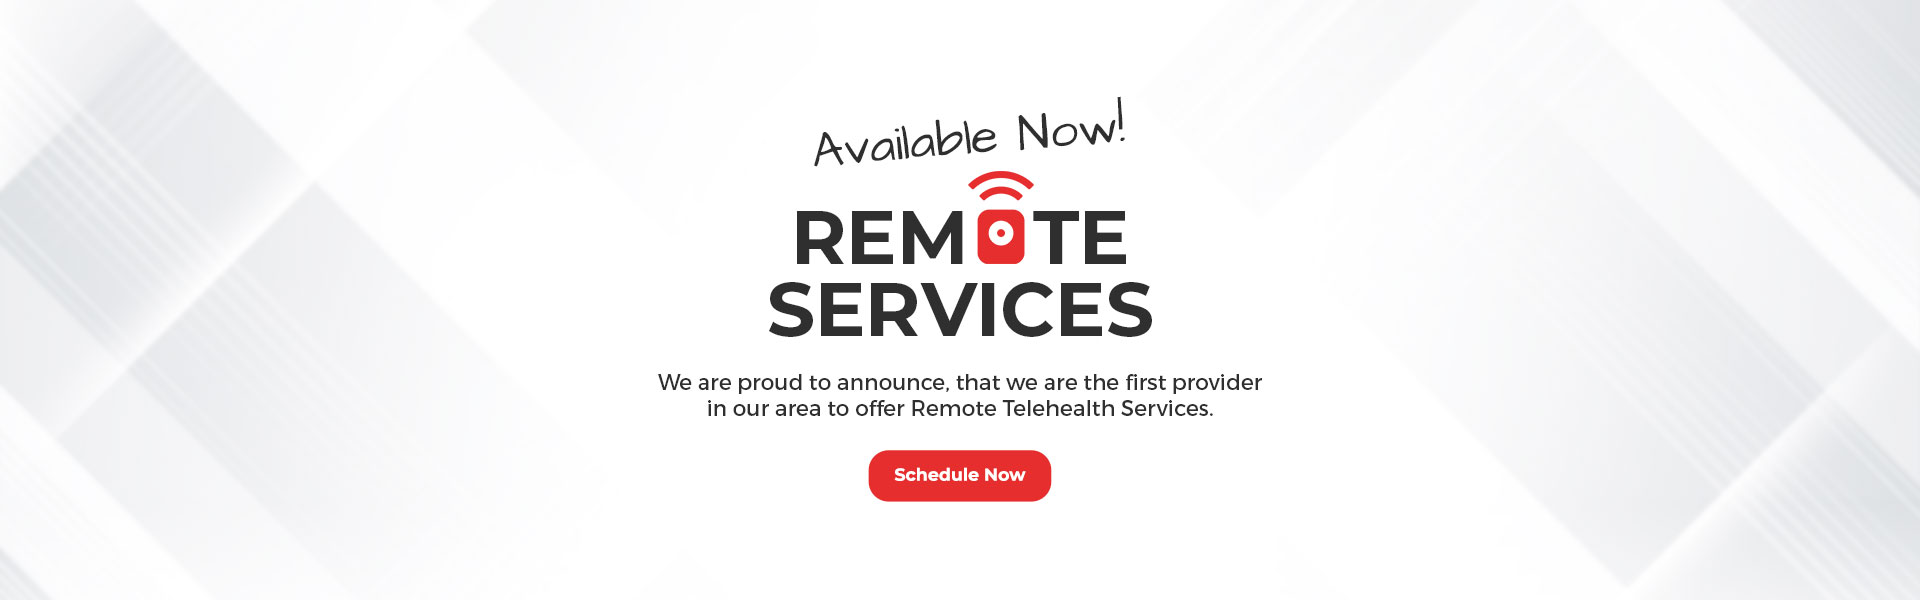 Remote Telehealth Services Banner | Nardelli Audiology